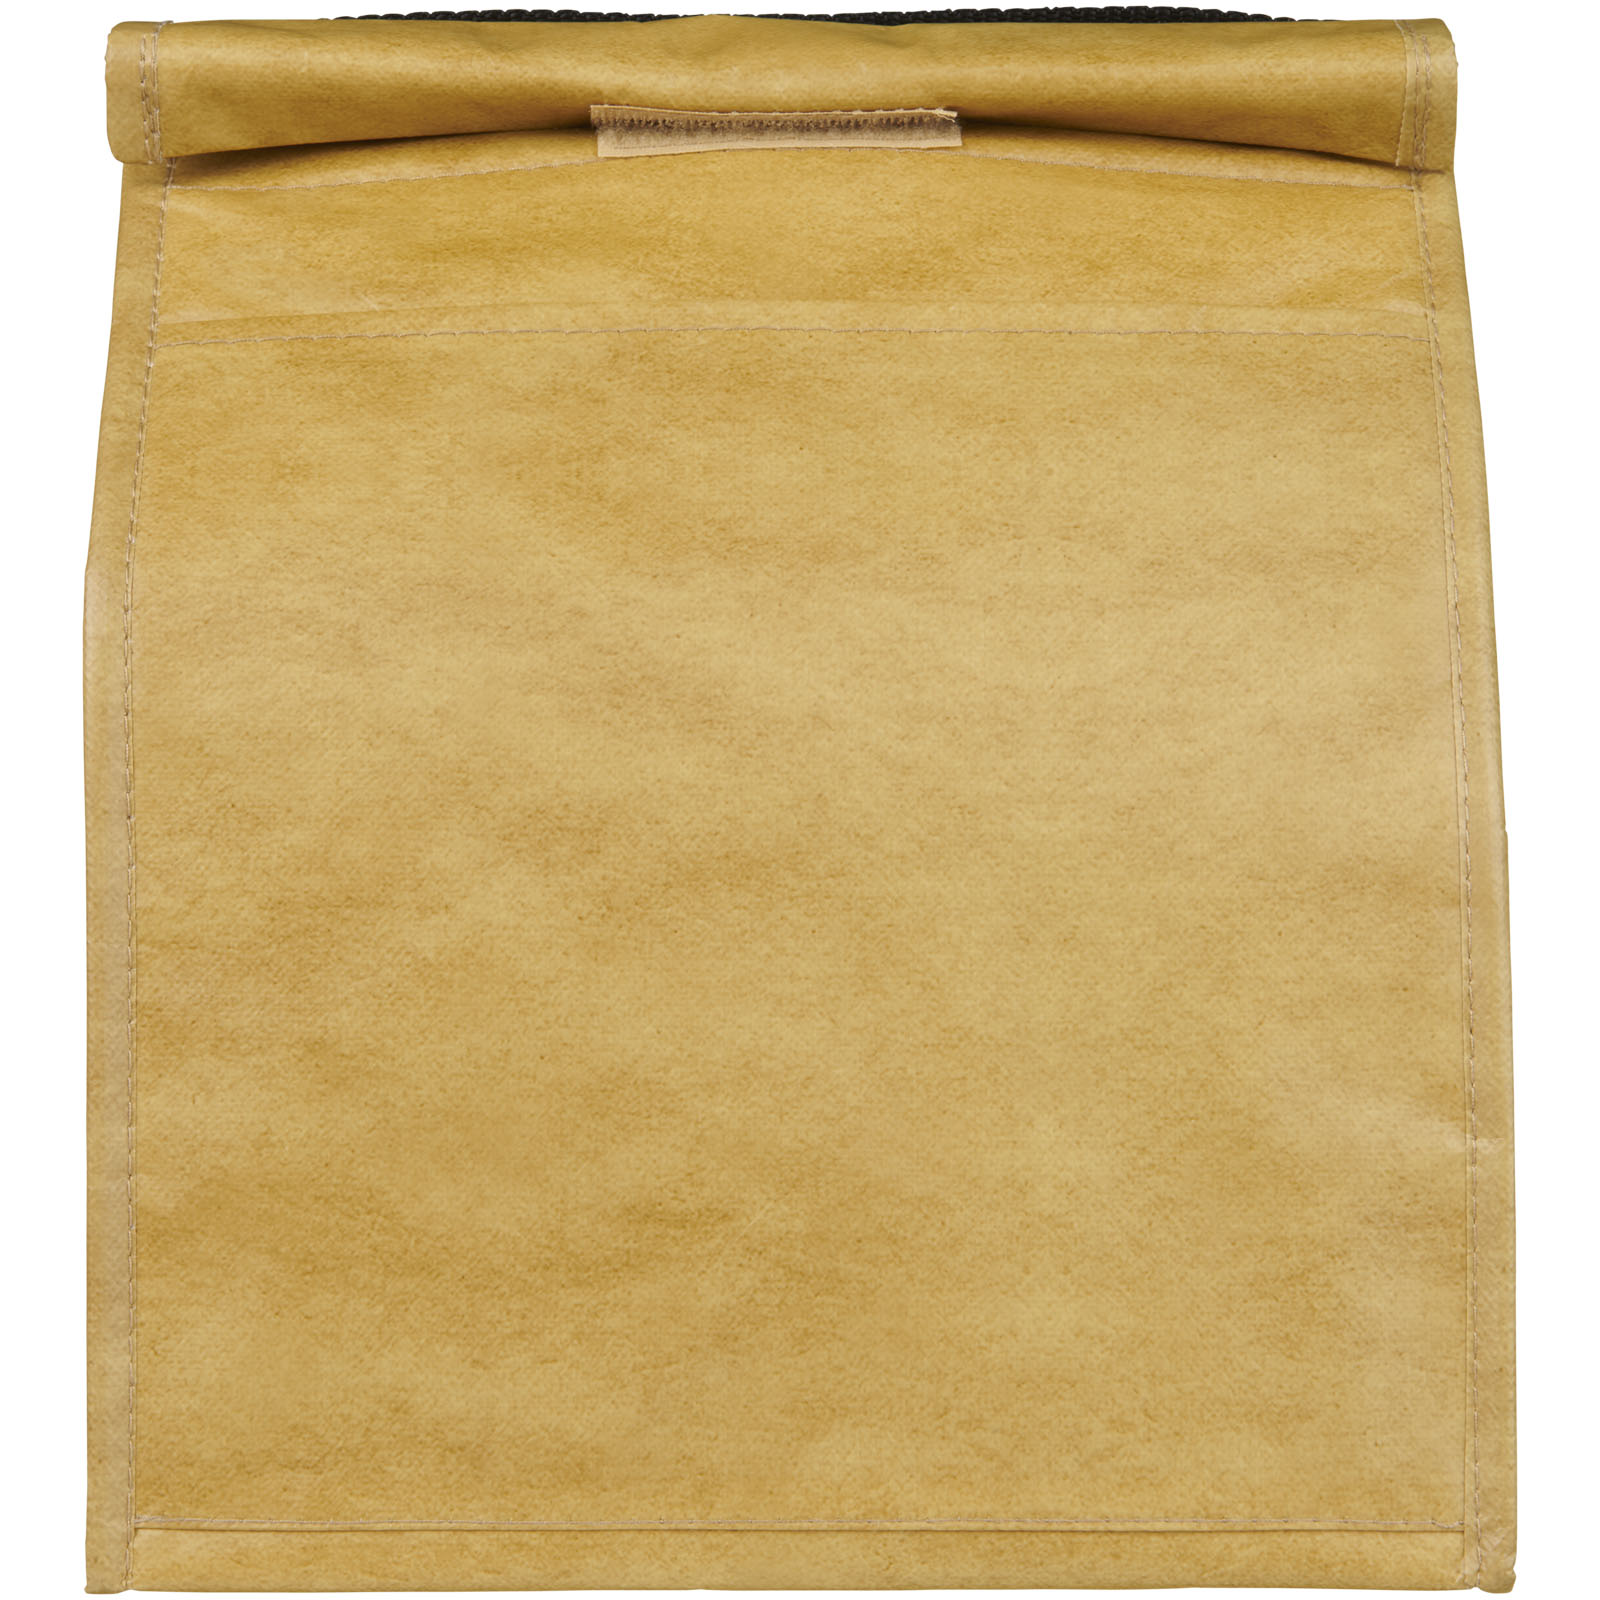 Thermo bag for 12 cans, paper bag with lamination